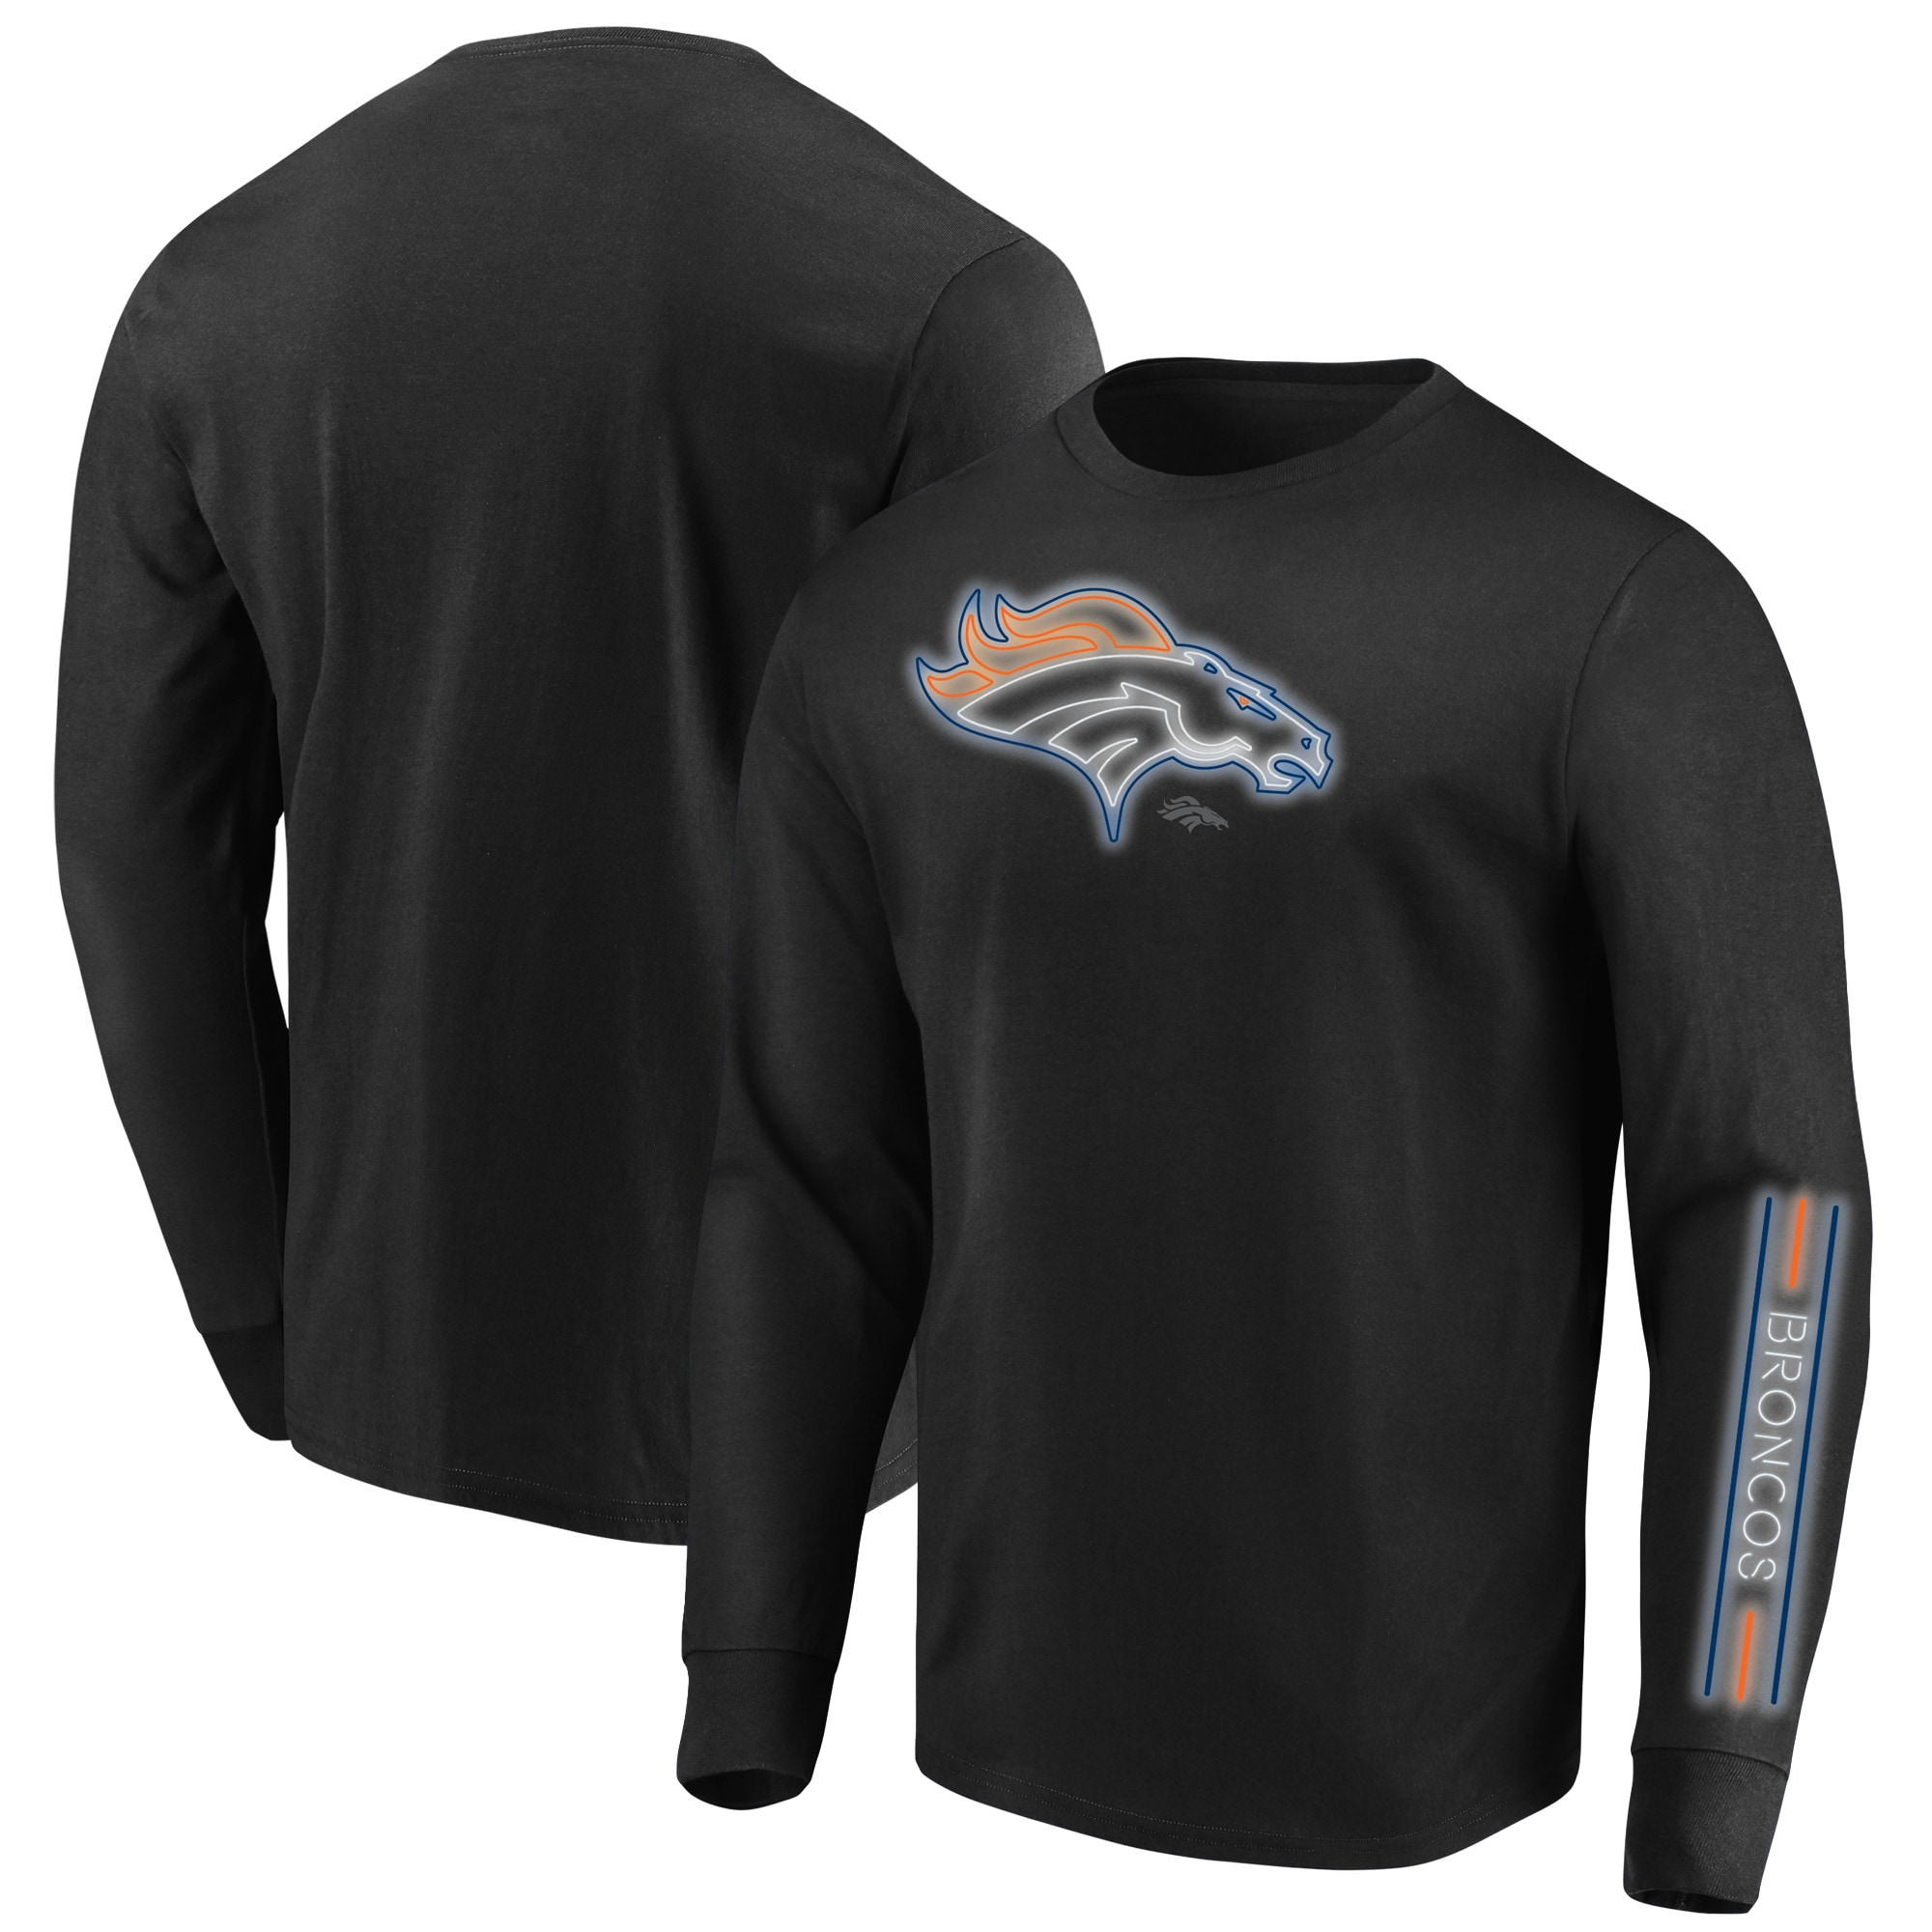 Denver Broncos Majestic Big & Tall Startling Success Long Sleeve T-Shirt - Black